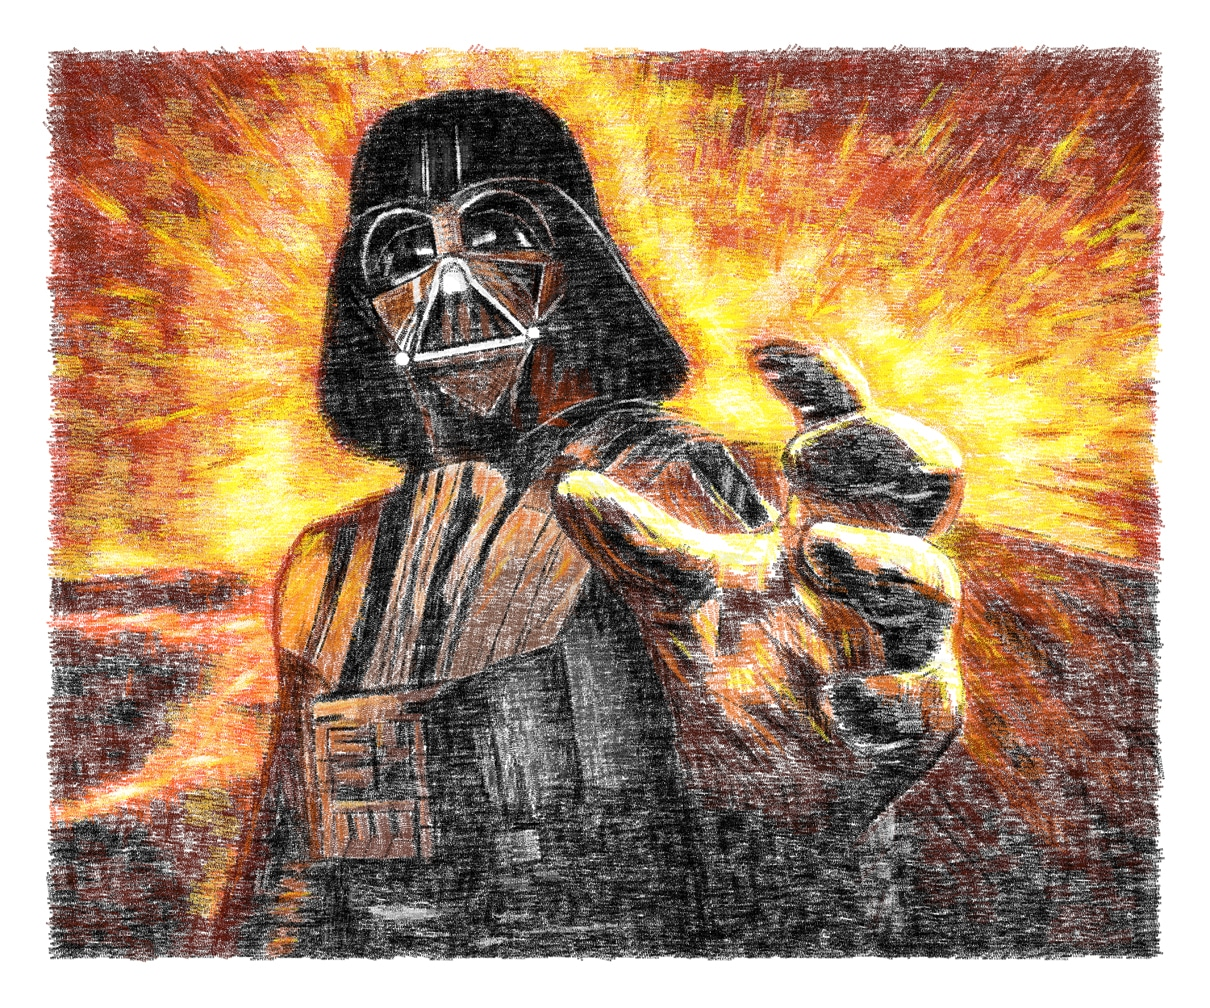 Pop Culture Art Created By Copying Phrases Thousands Of Times